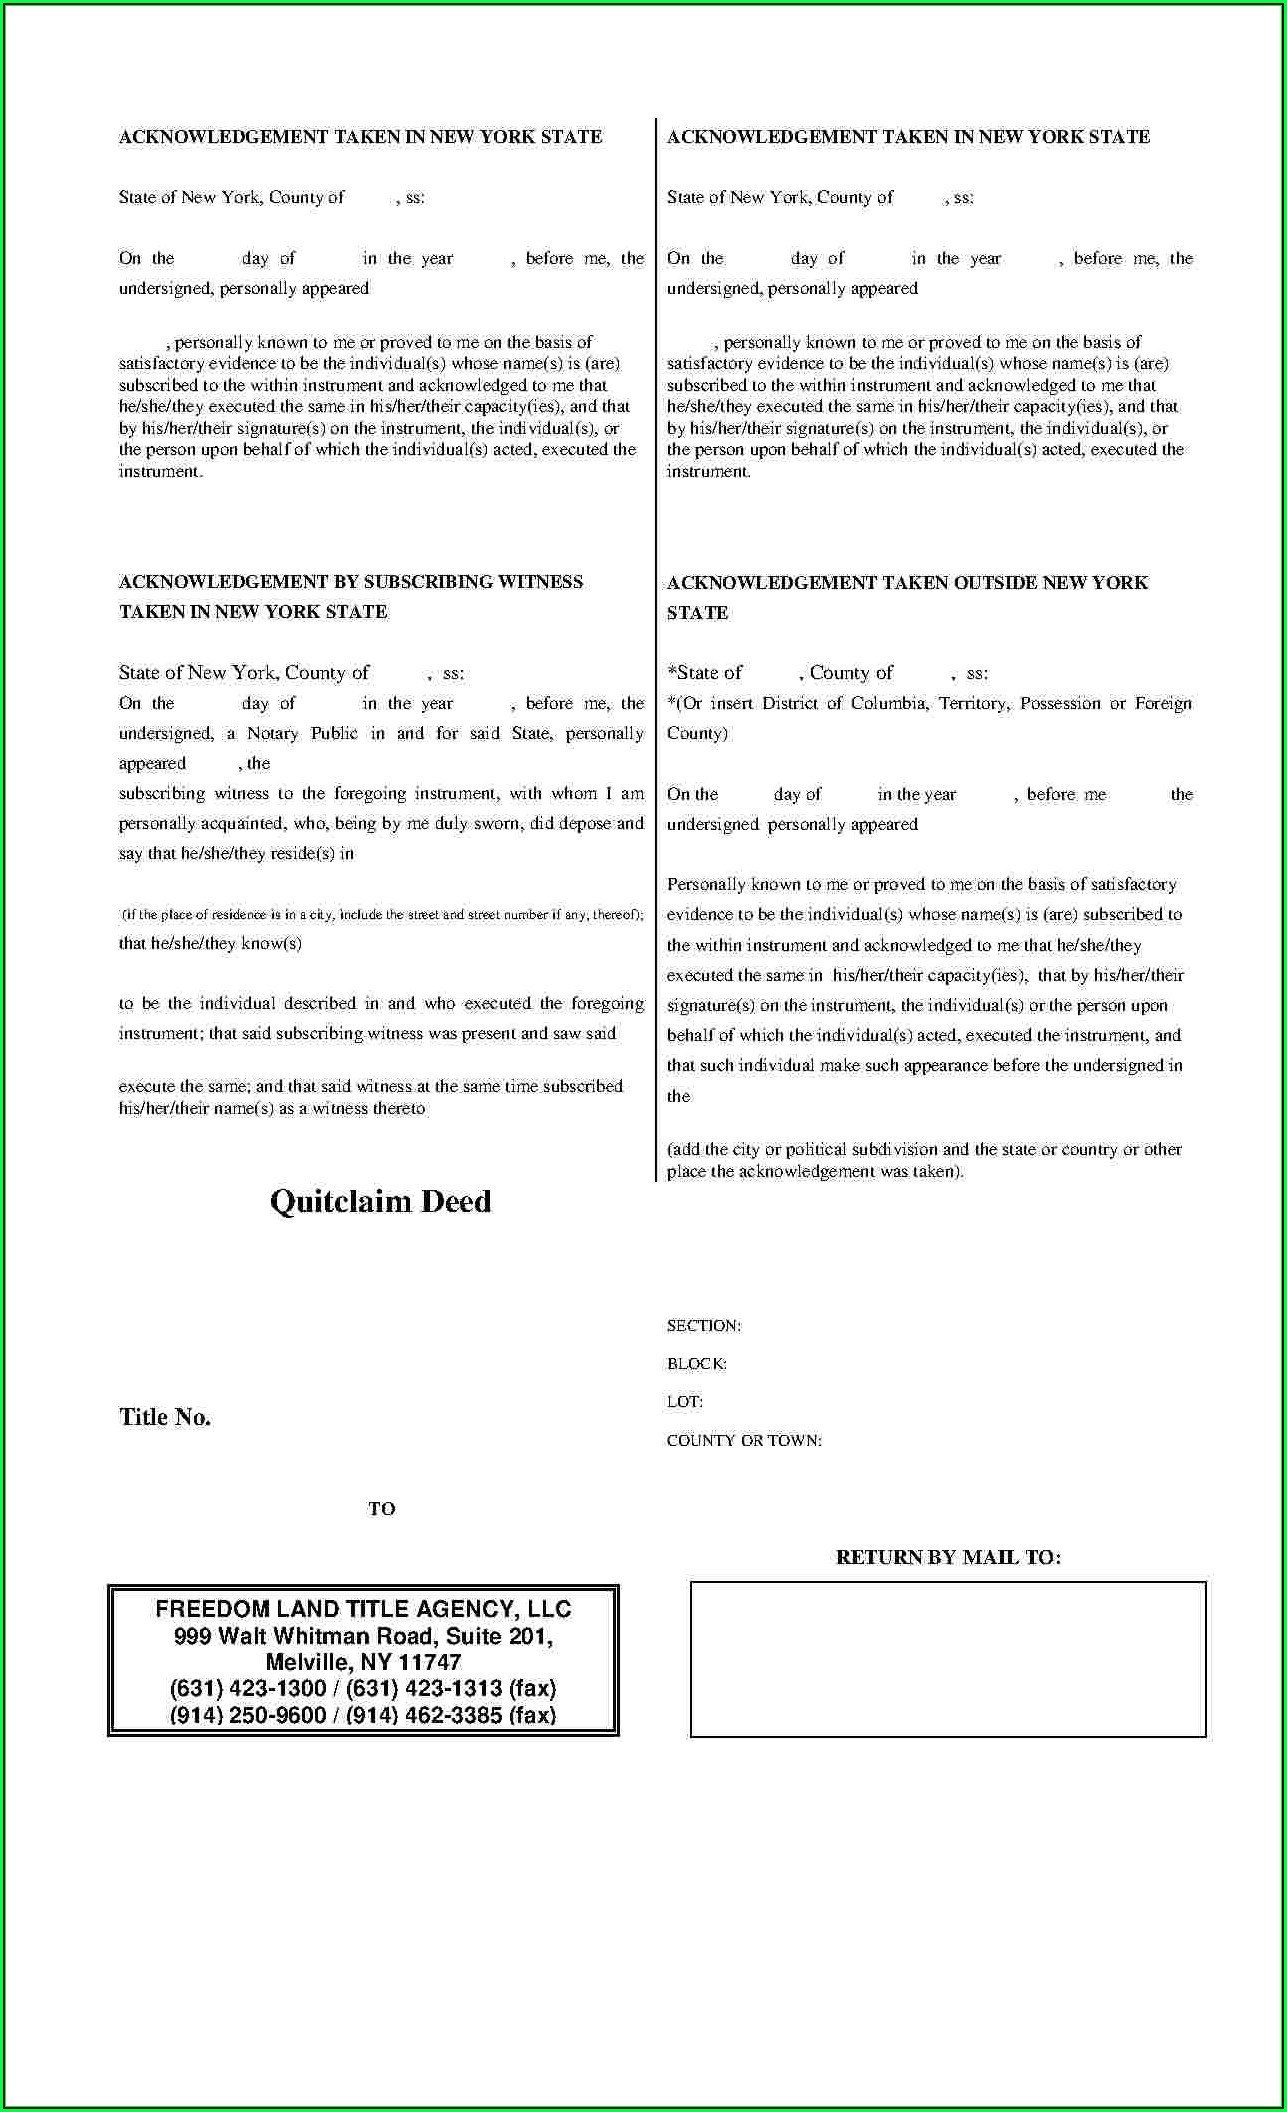 New York City Quit Claim Deed Form